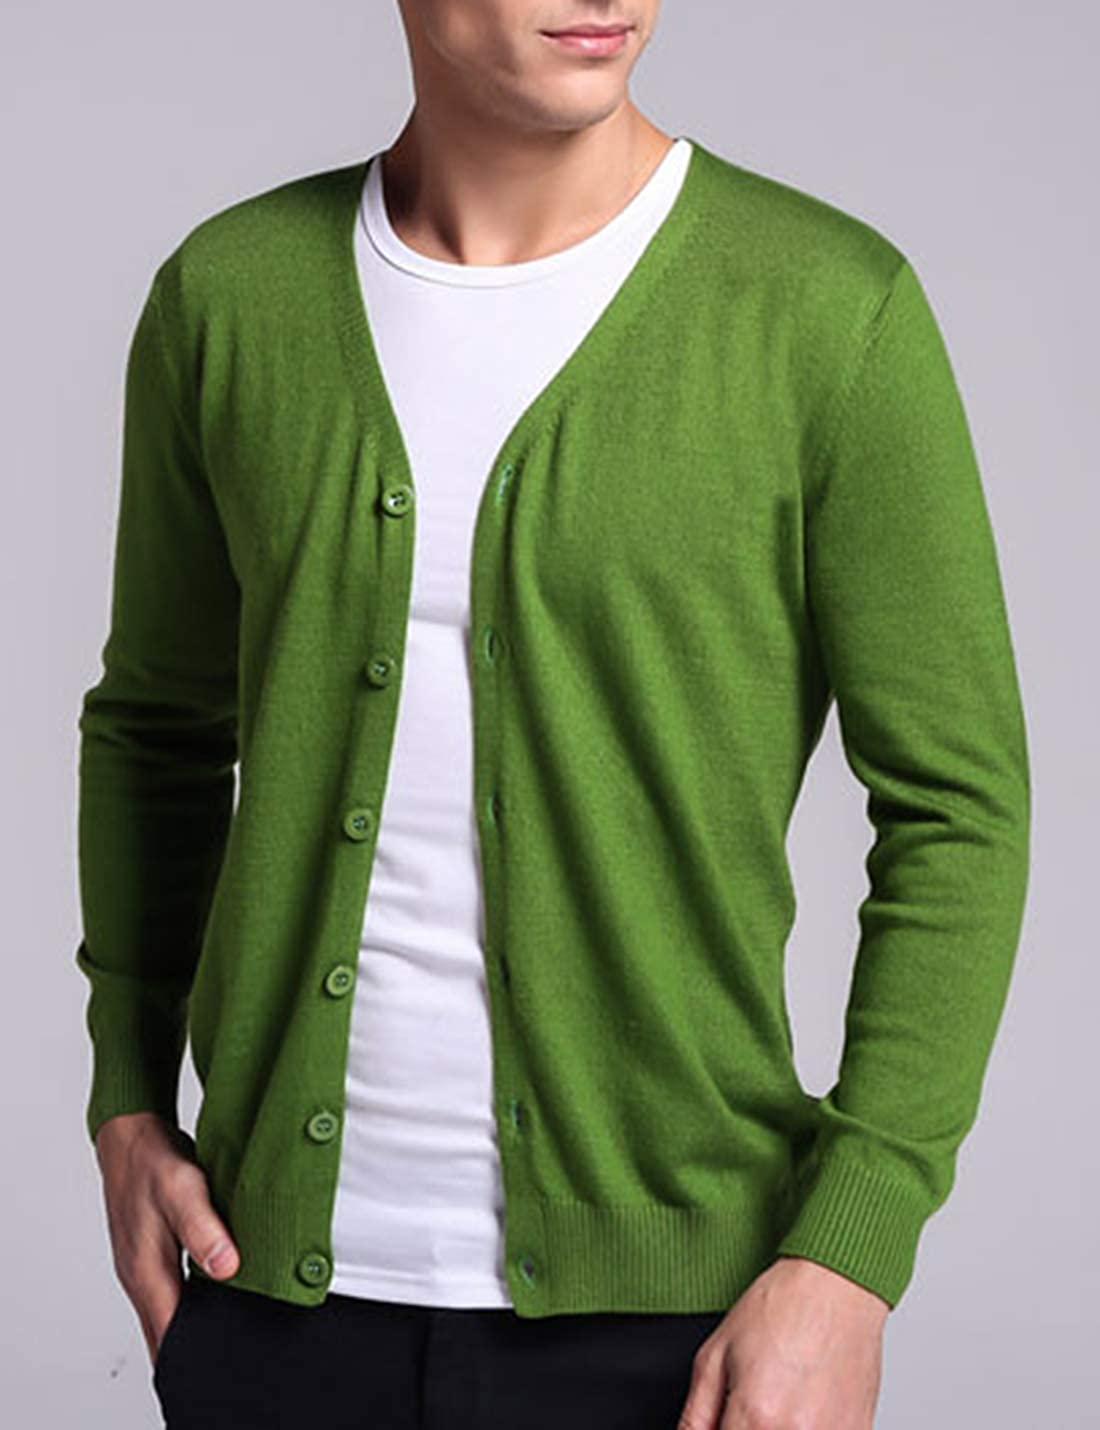 Lentta Mens Slim Fit Solid Color Wool Blend Cotton Knitted Cardigan with Buttons